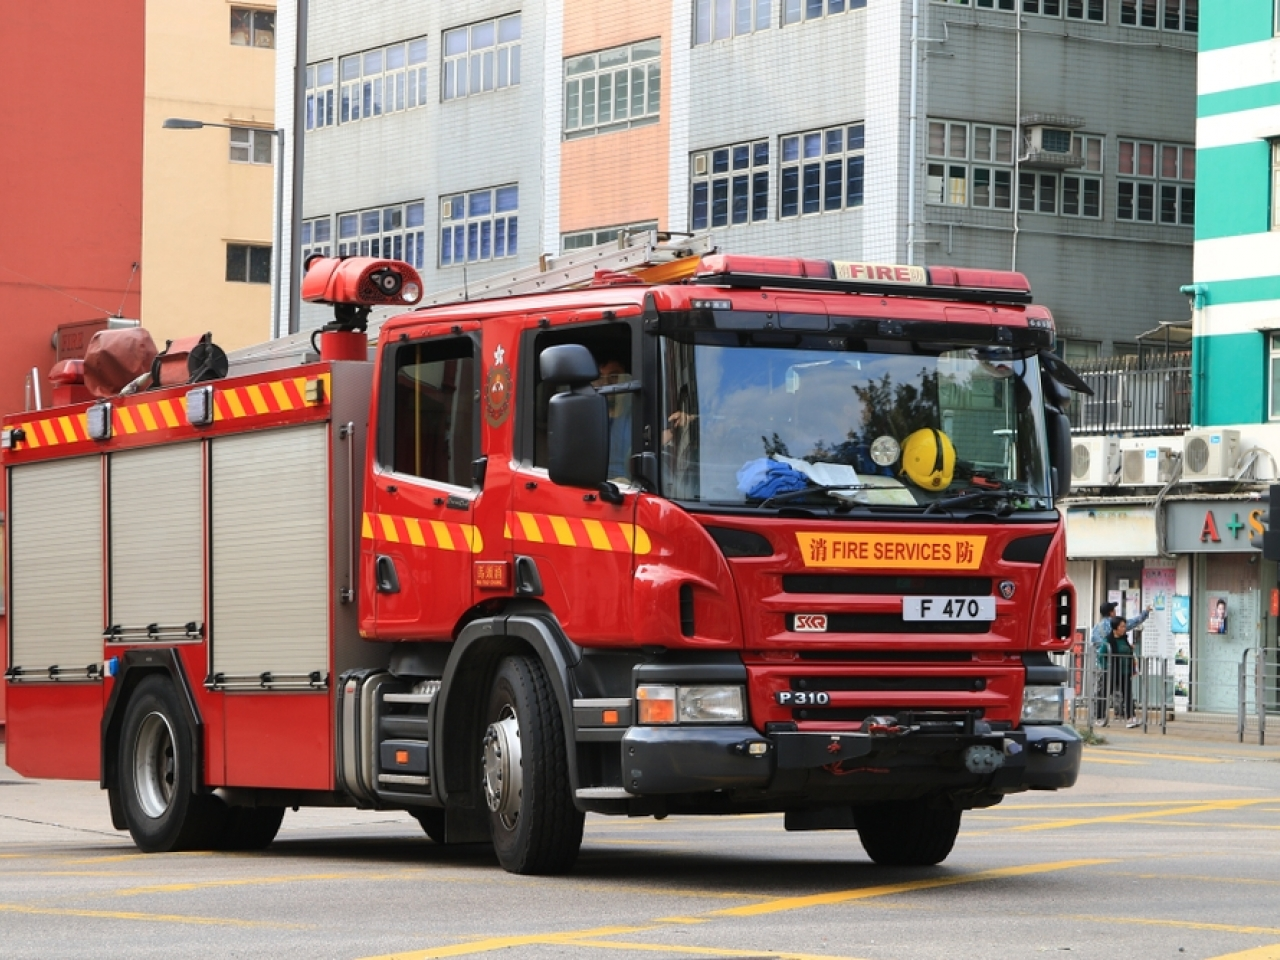 The fire commander on the ground told the Coroner's Court that metal railings prevented them from putting an air cushion closer to where Marco Leung was standing. Image: Shutterstock